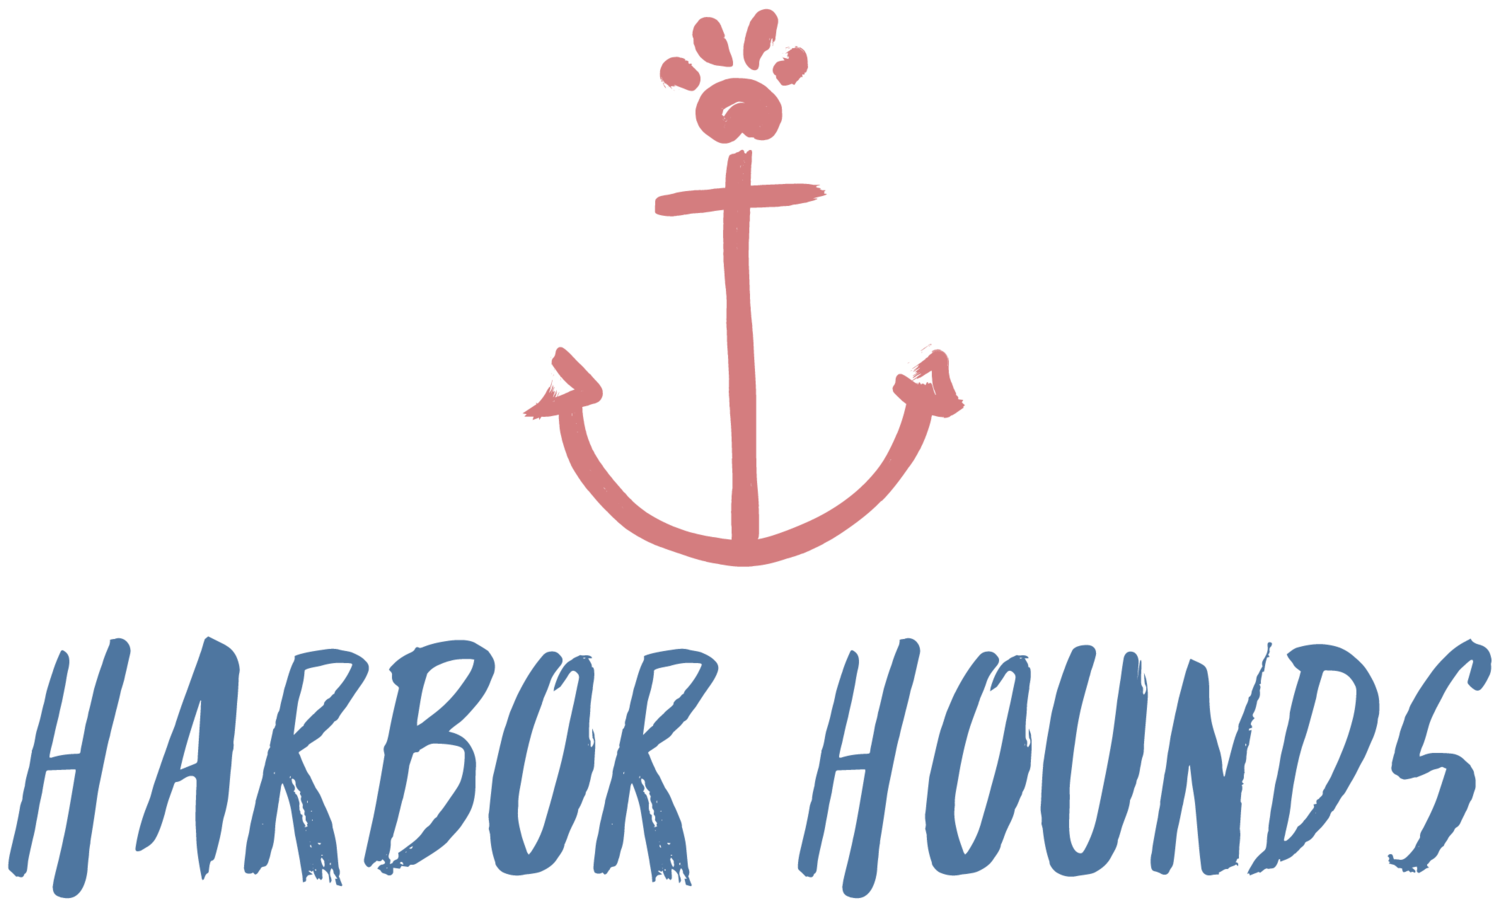 Harbor Hounds